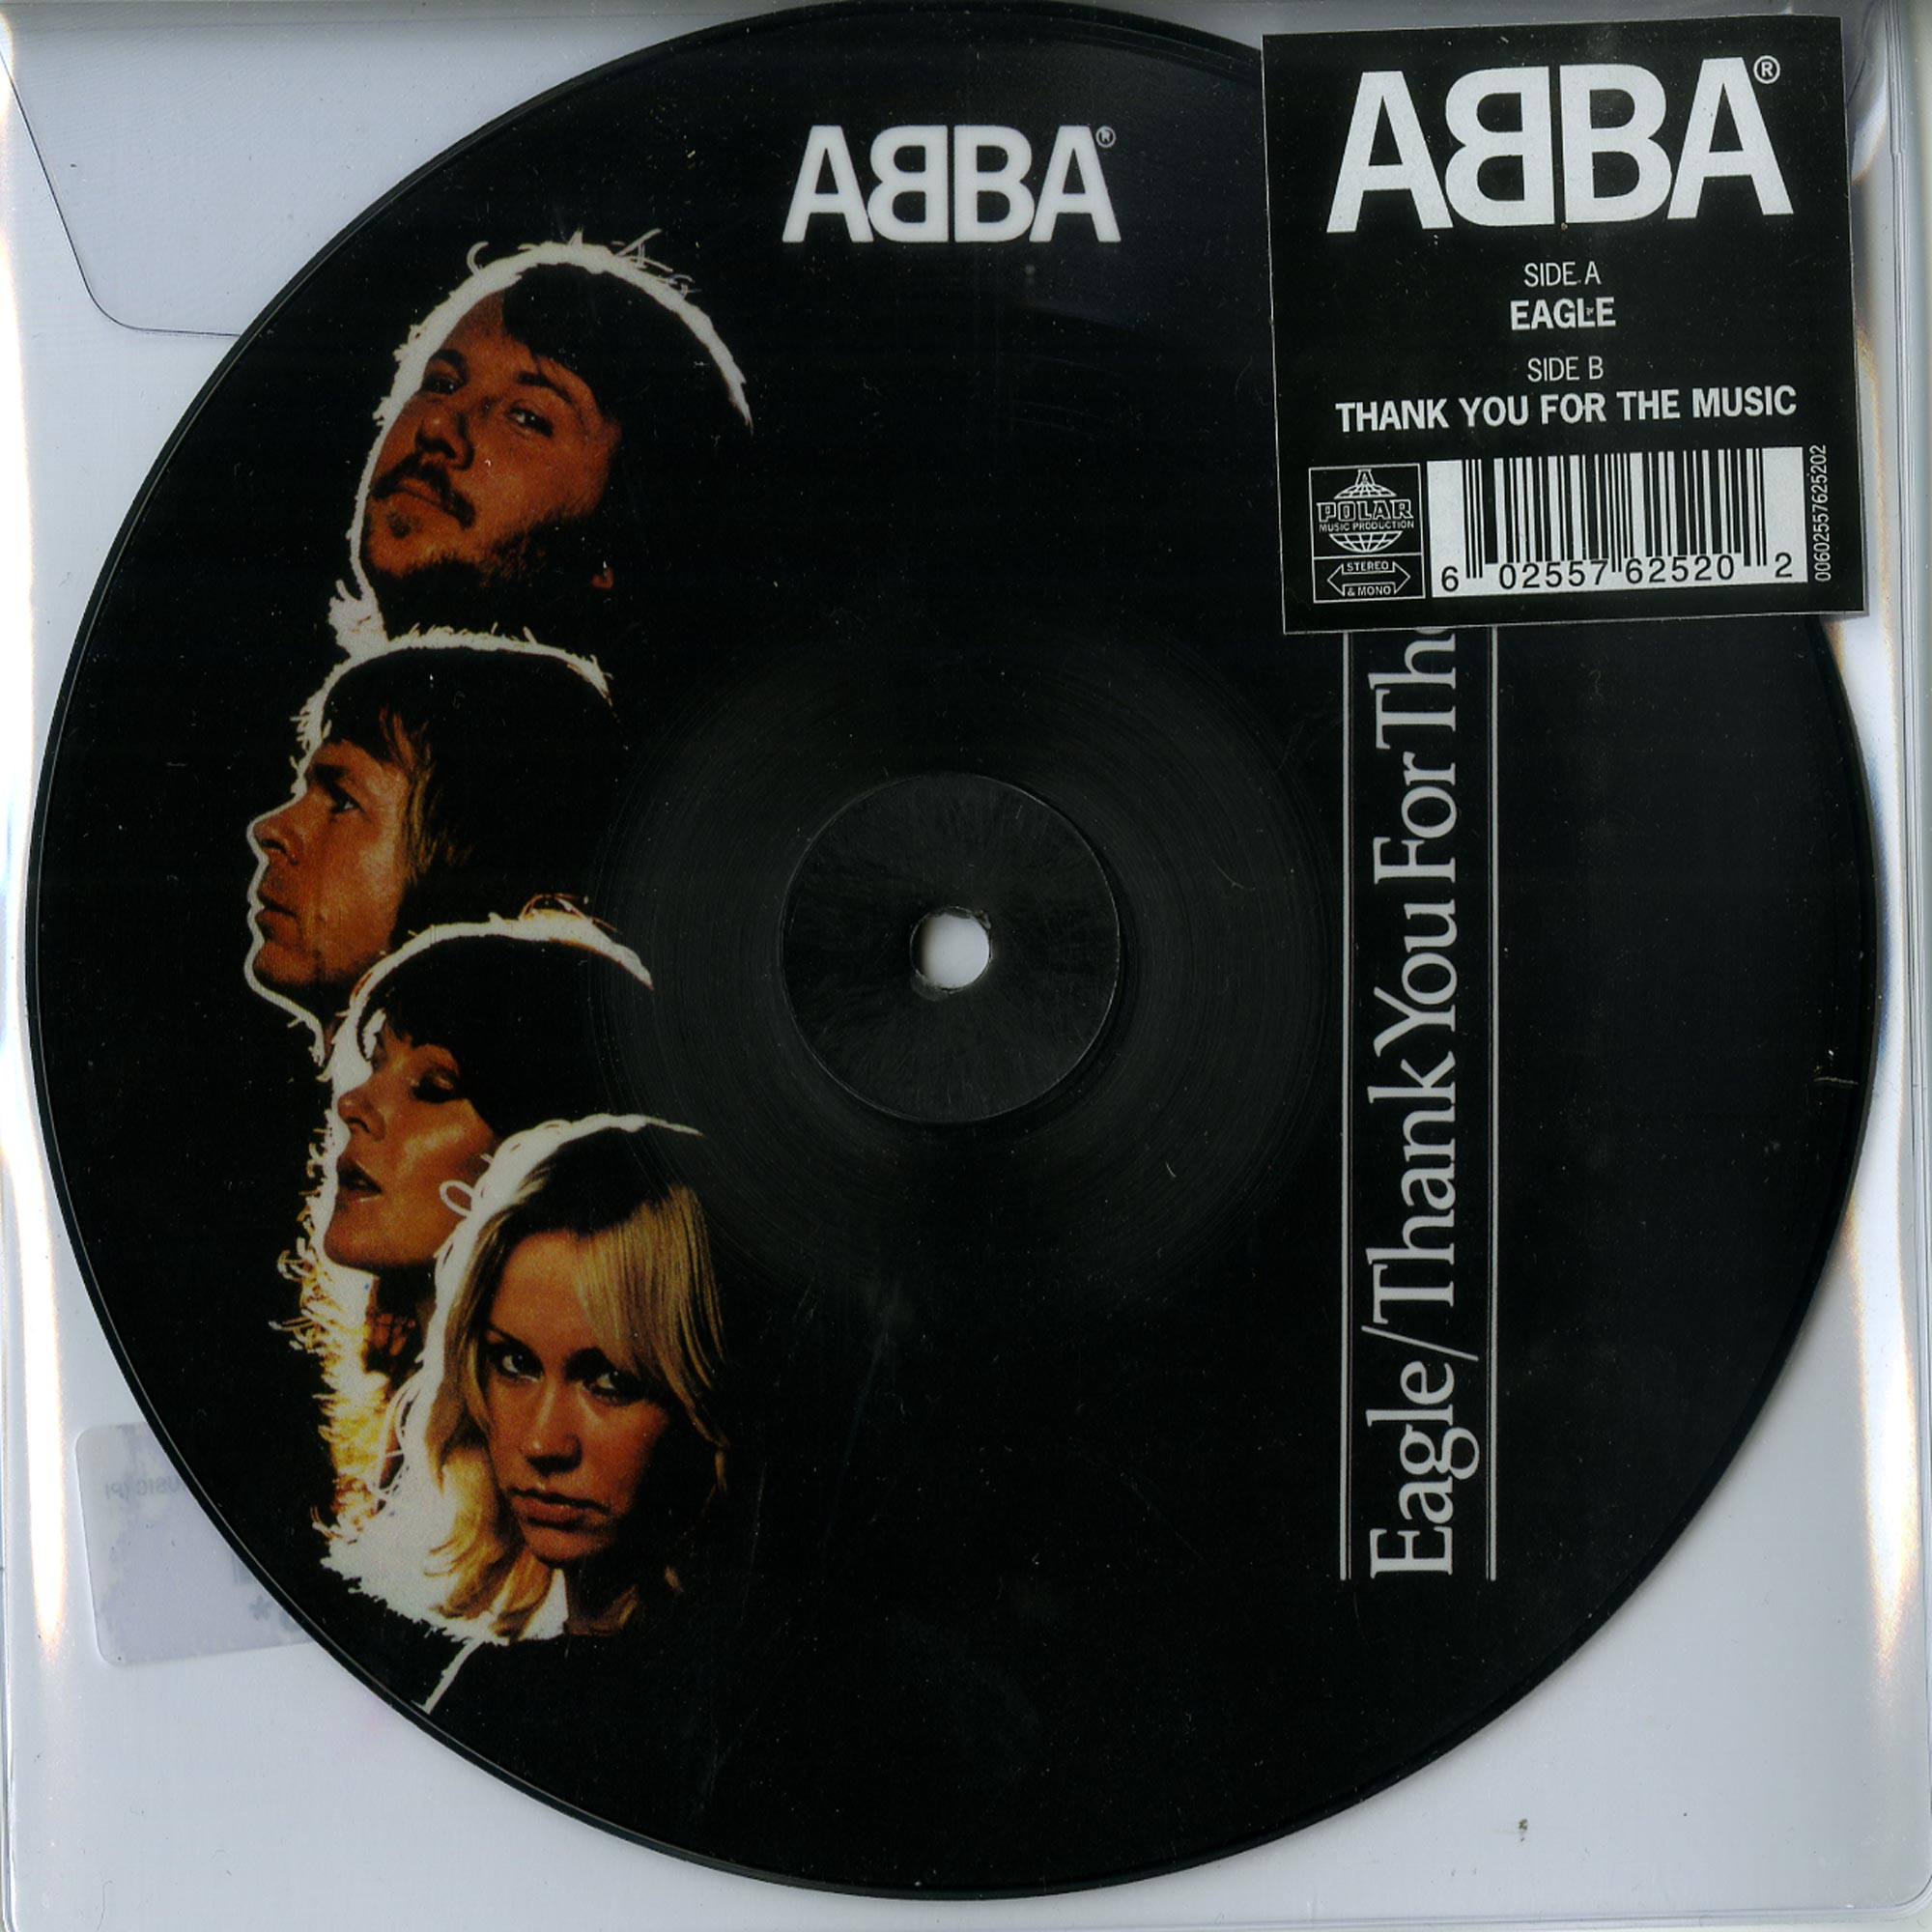 ABBA - EAGLE / THANK YOU FOR THE MUSIC